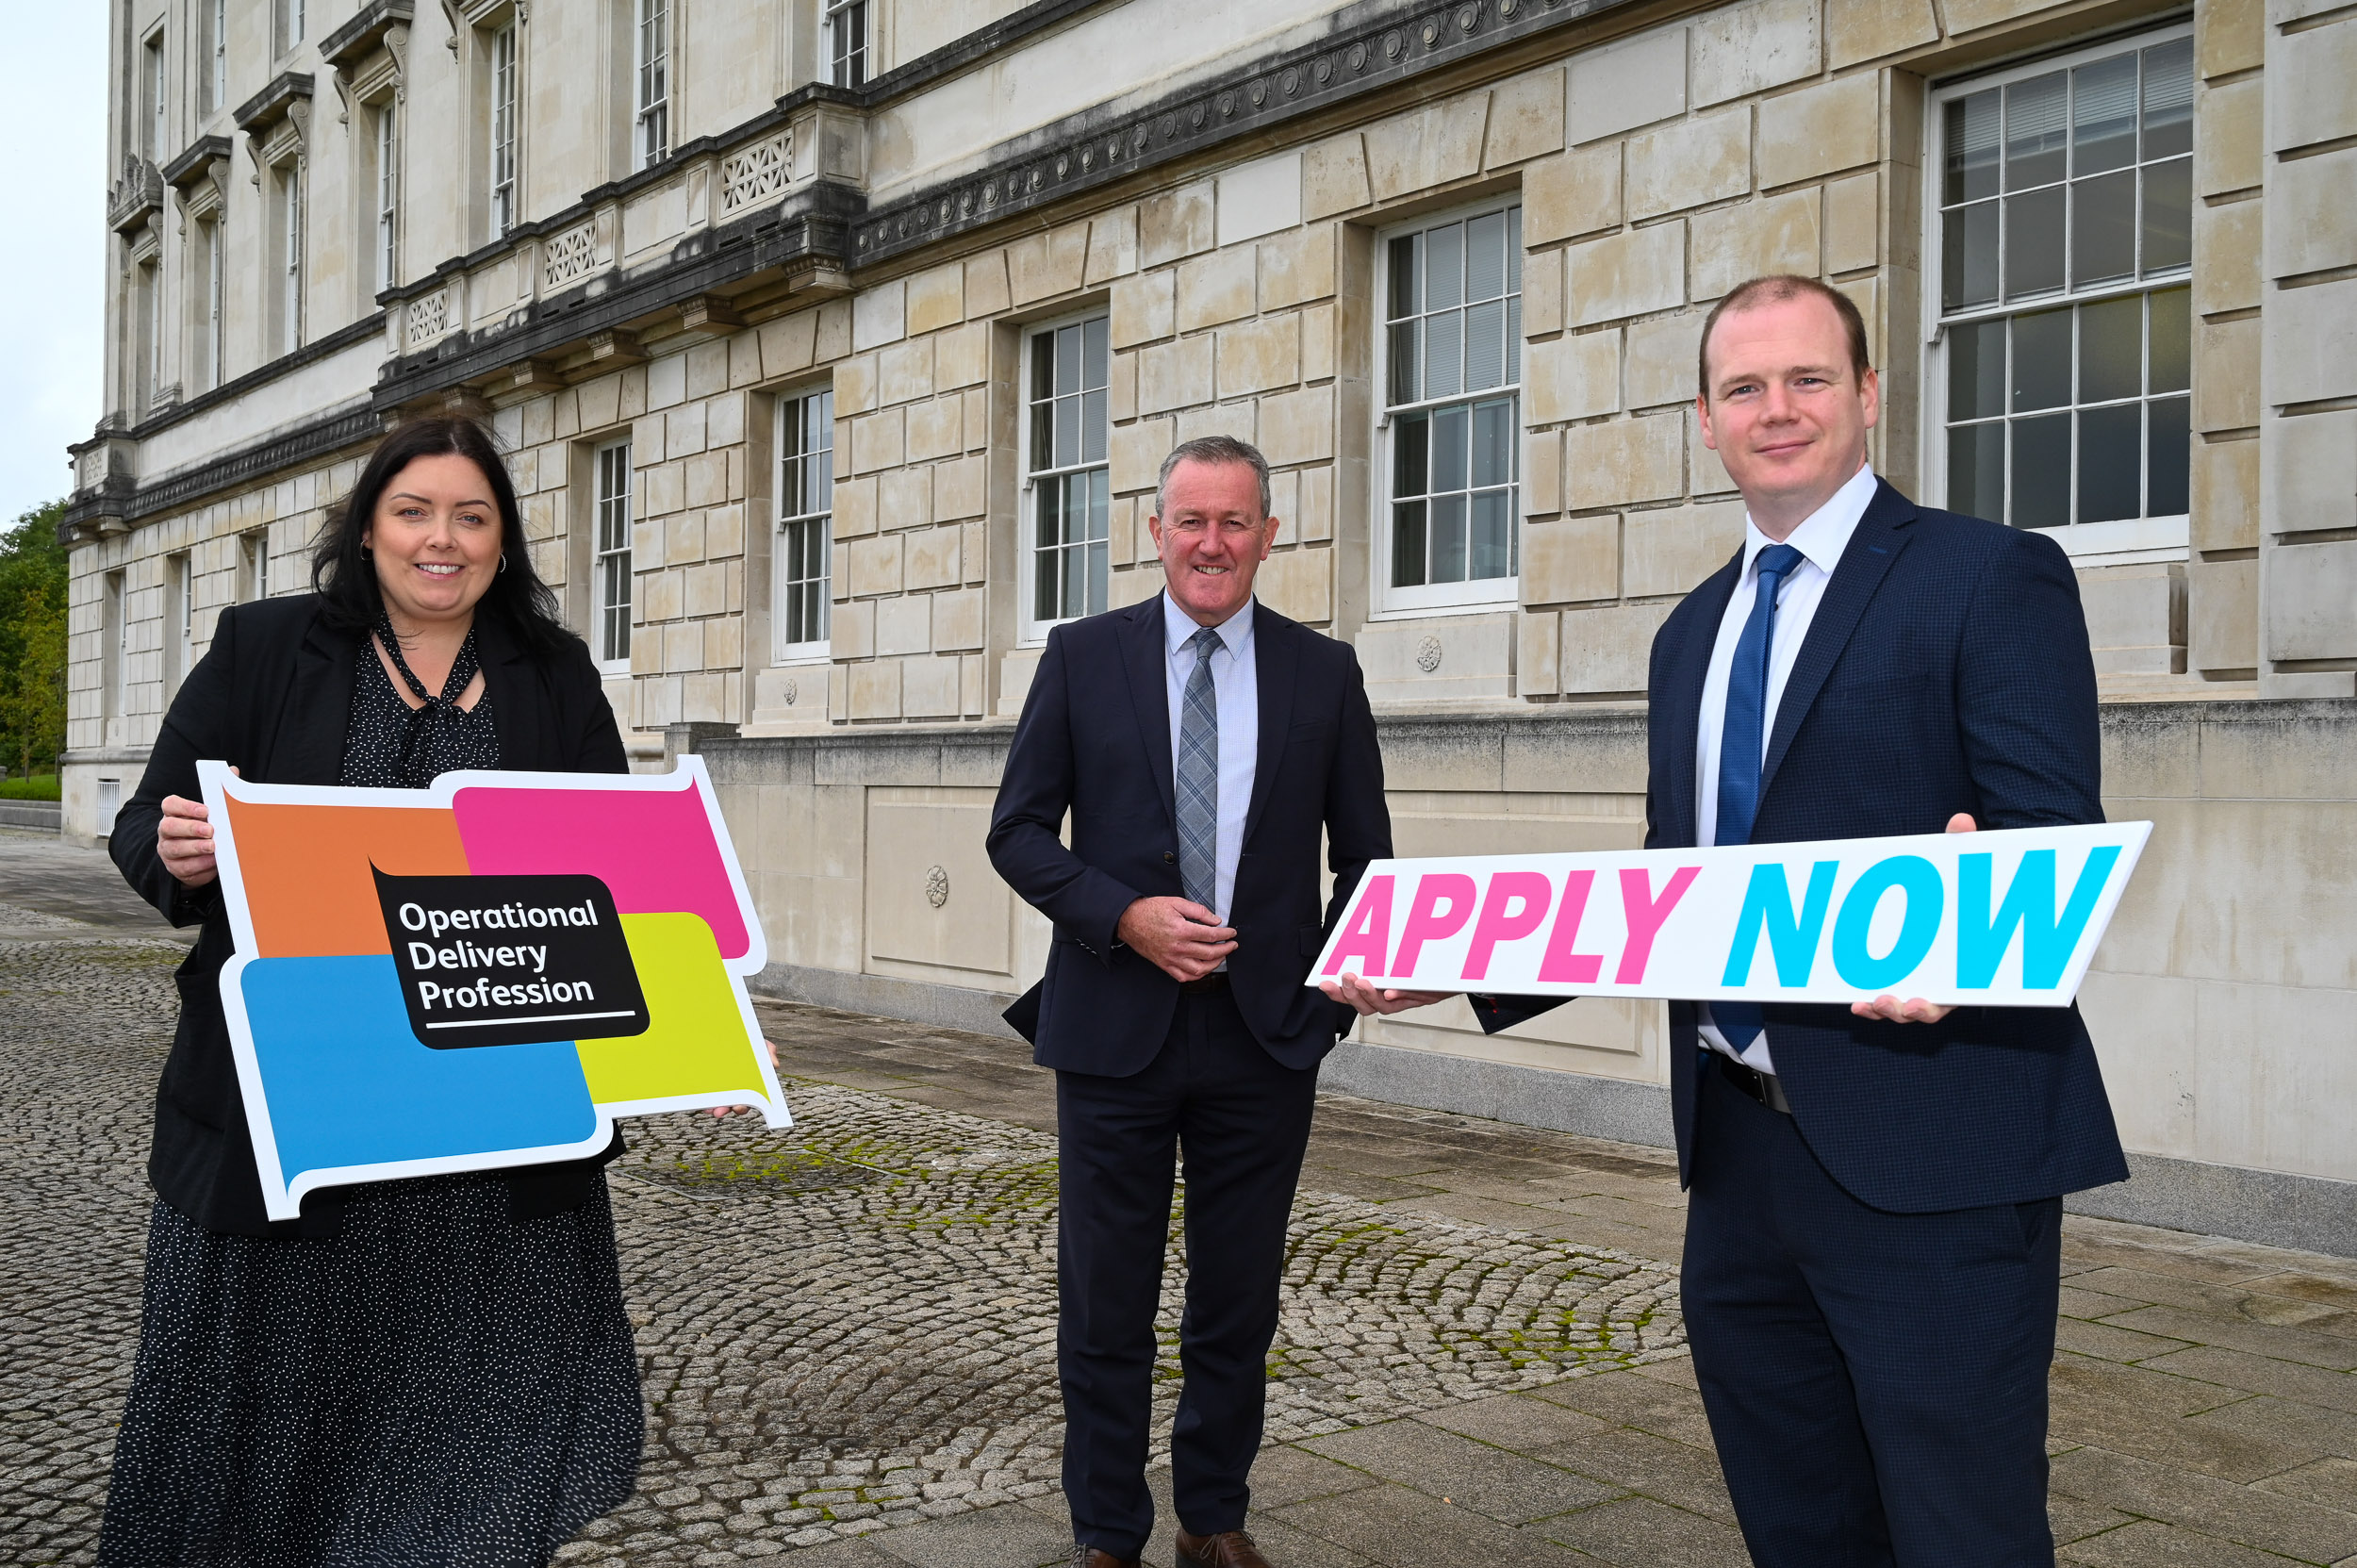 New Operational Delivery Apprenticeship scheme launched - Newry Times - news newry co down